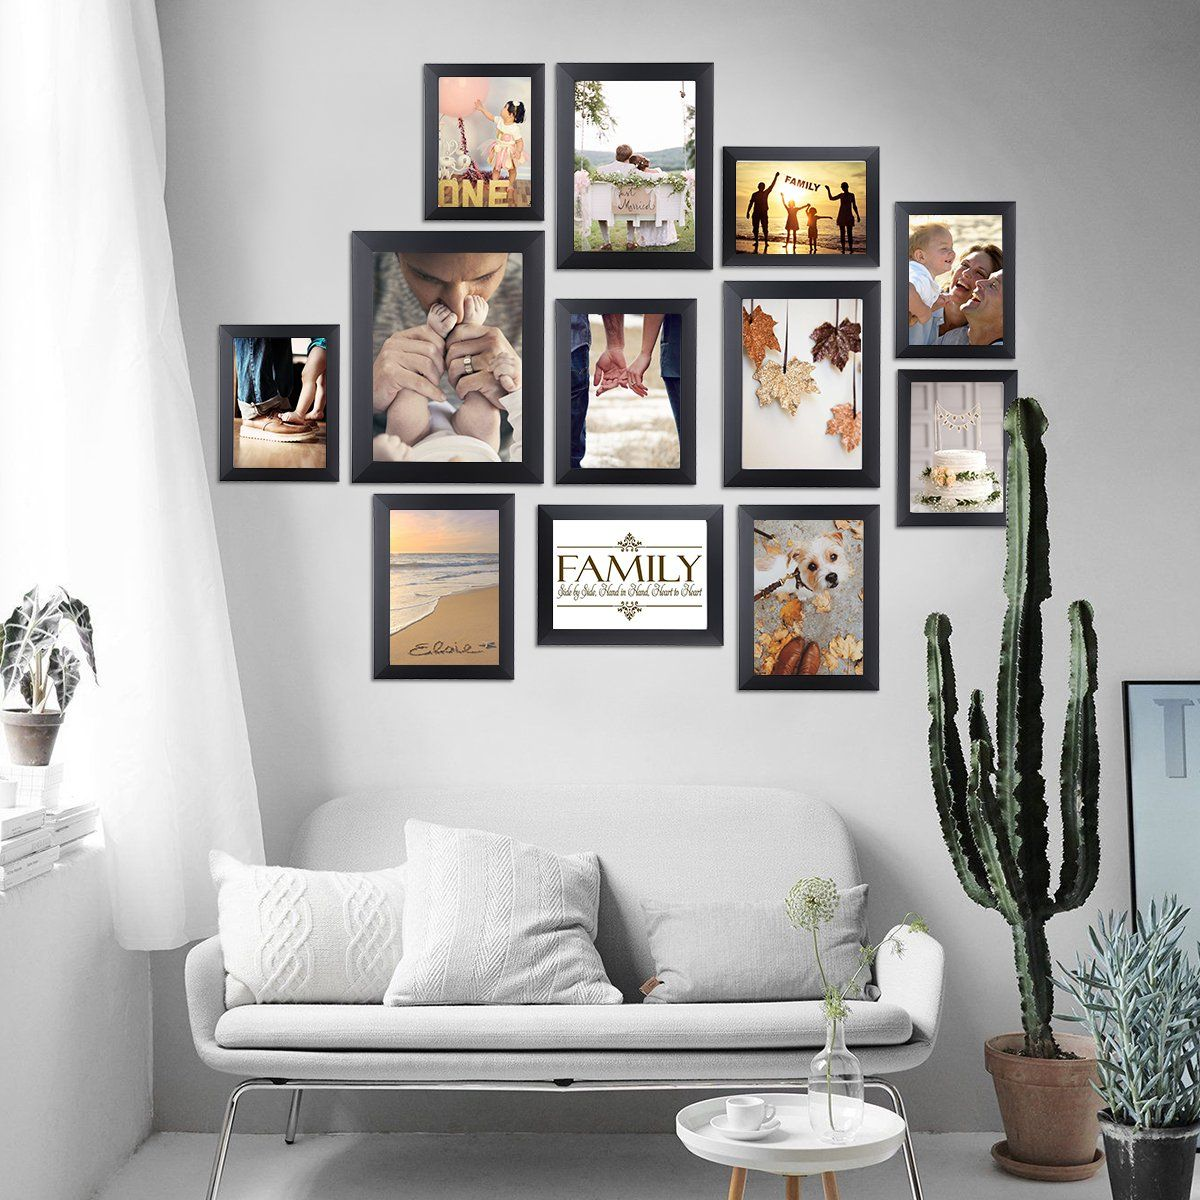 Homemaxs Picture Frame Collage Photo Frame Wall Mounting Photo Frames Ecofriendly Family Photo Frame 12 Set Frames On Wall Photo Frame Wall Family Photo Frames